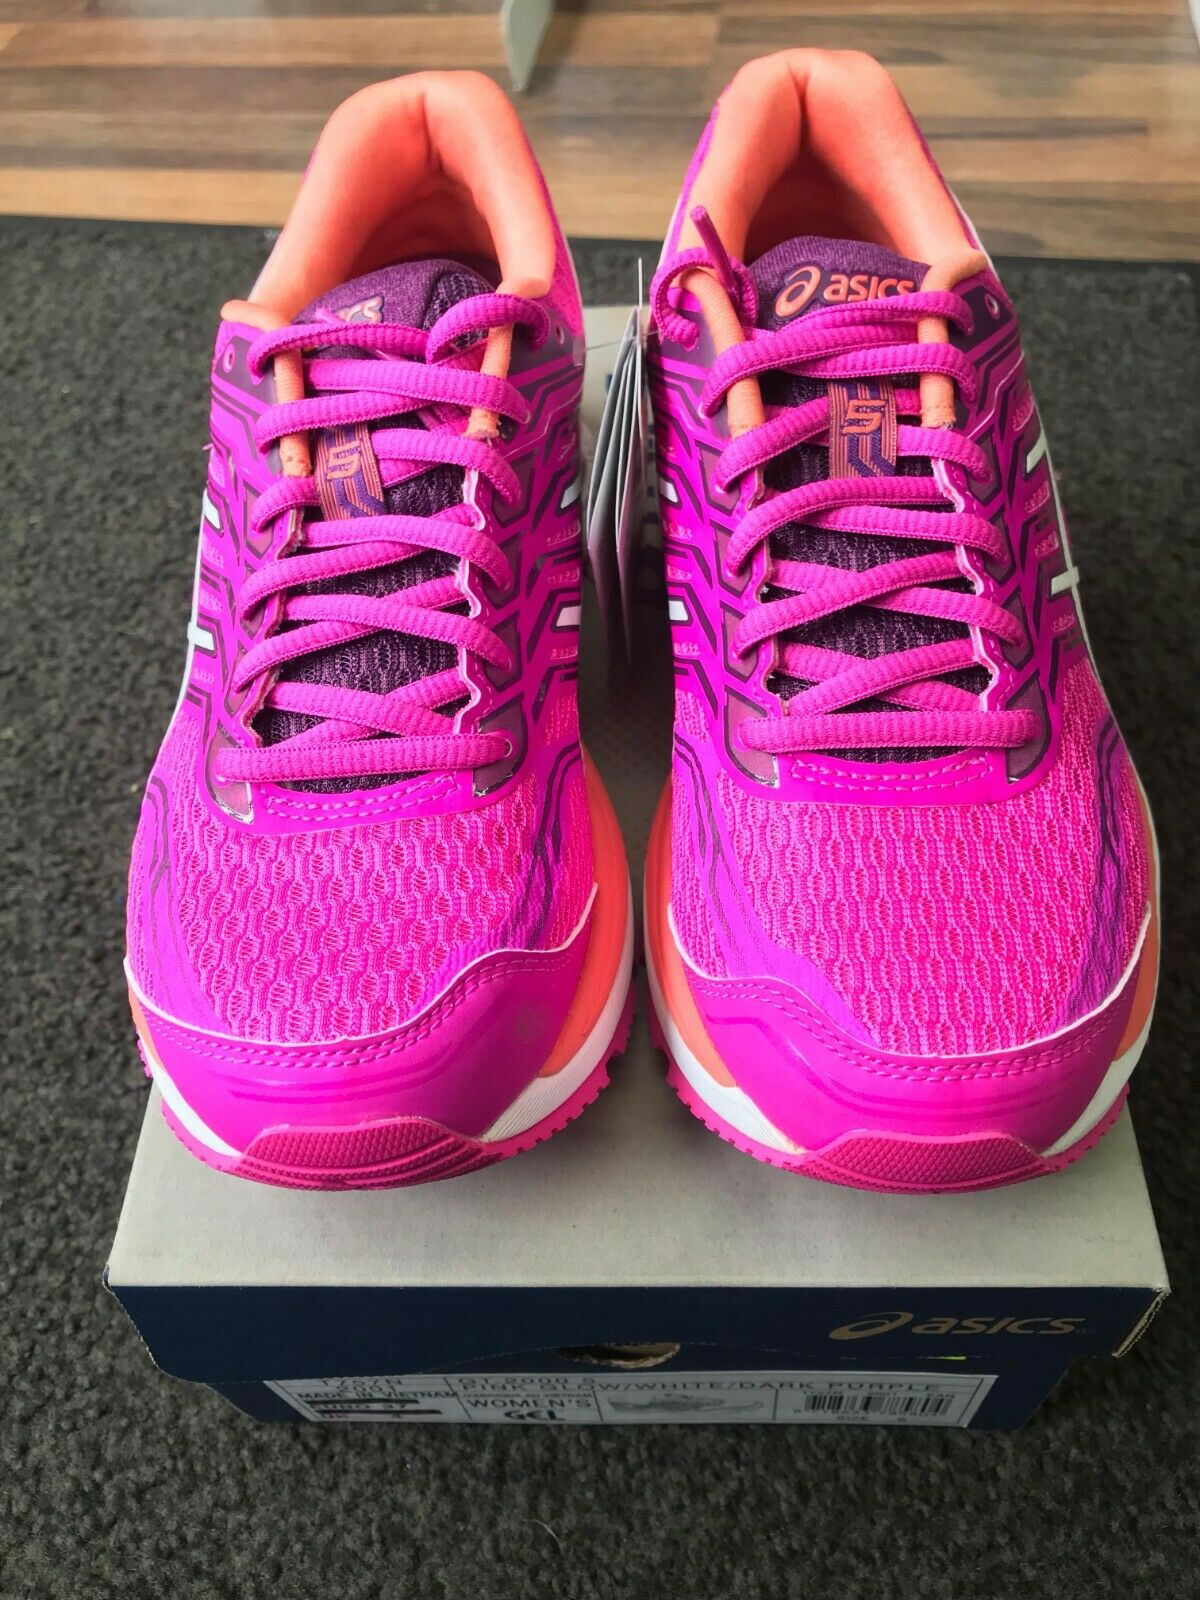 New ASICS GT-2000 5 womens running  shoe UK size 4.5  with 100% quality and %100 service